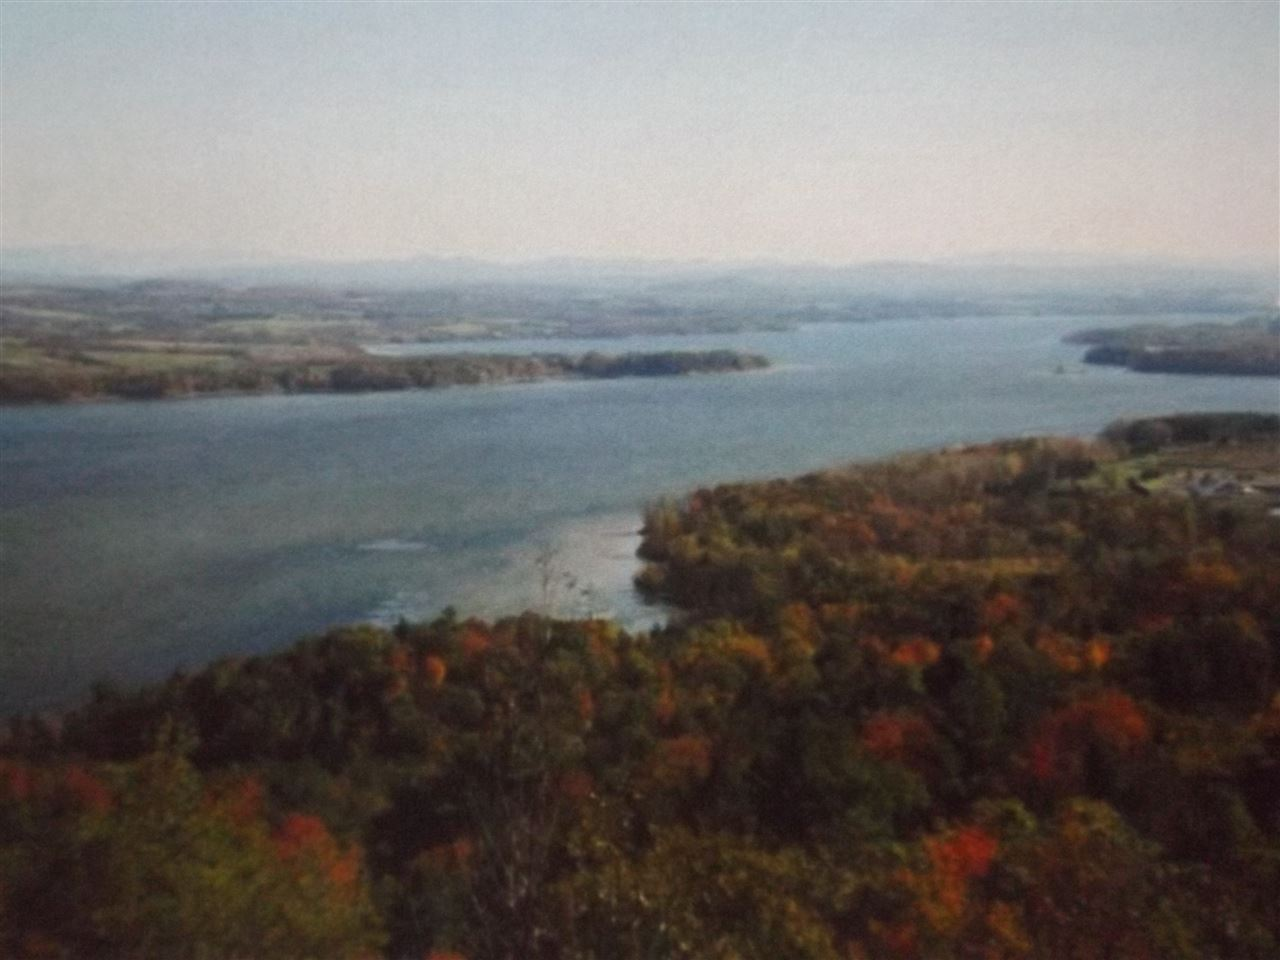 Crown Point image 49